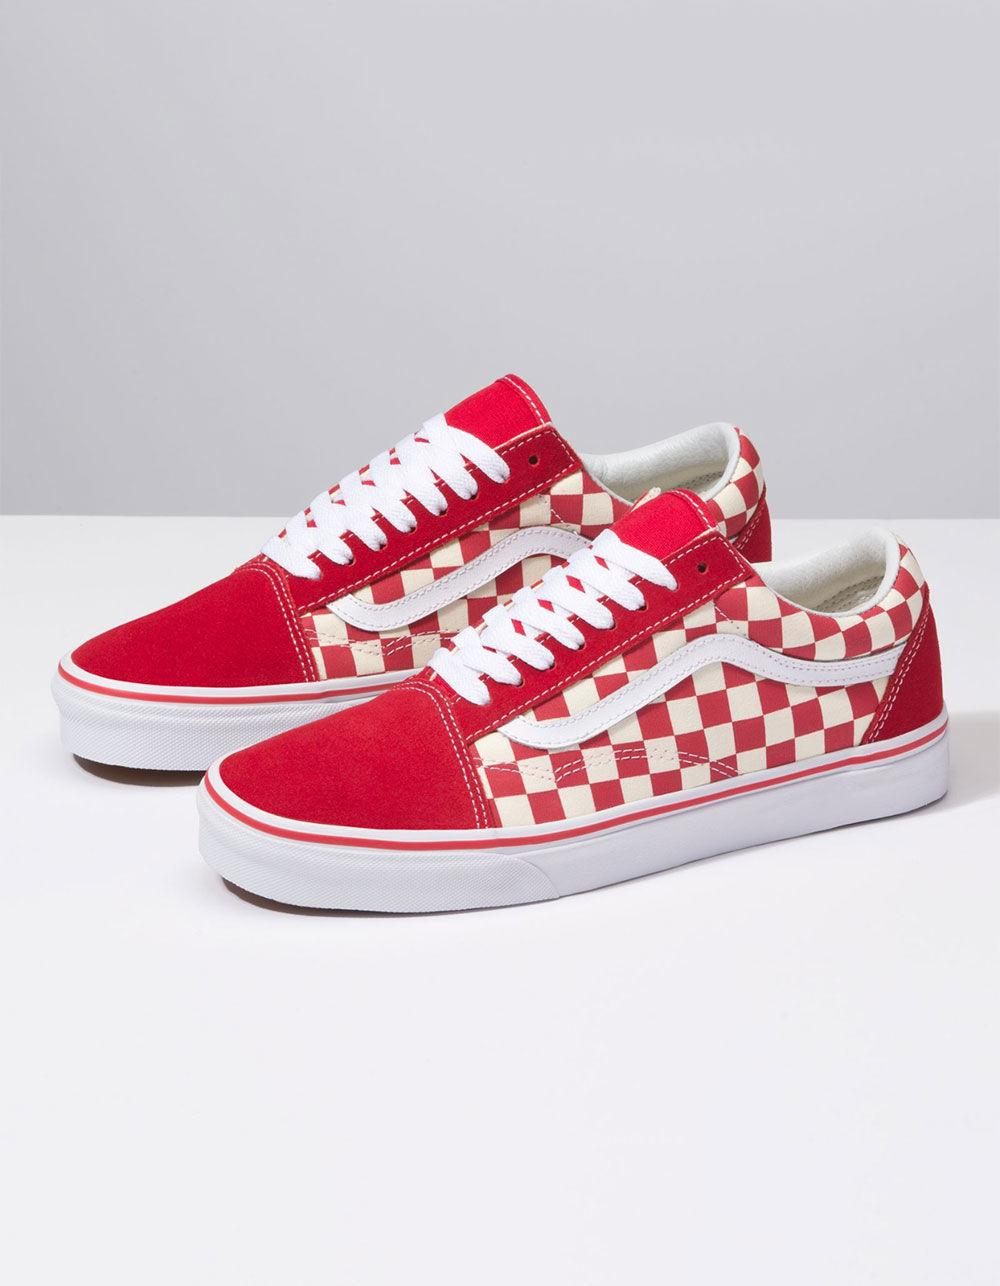 938ddc37afdf Lyst - Vans Primary Check Old Skool Racing Red   White Shoes in Red for Men